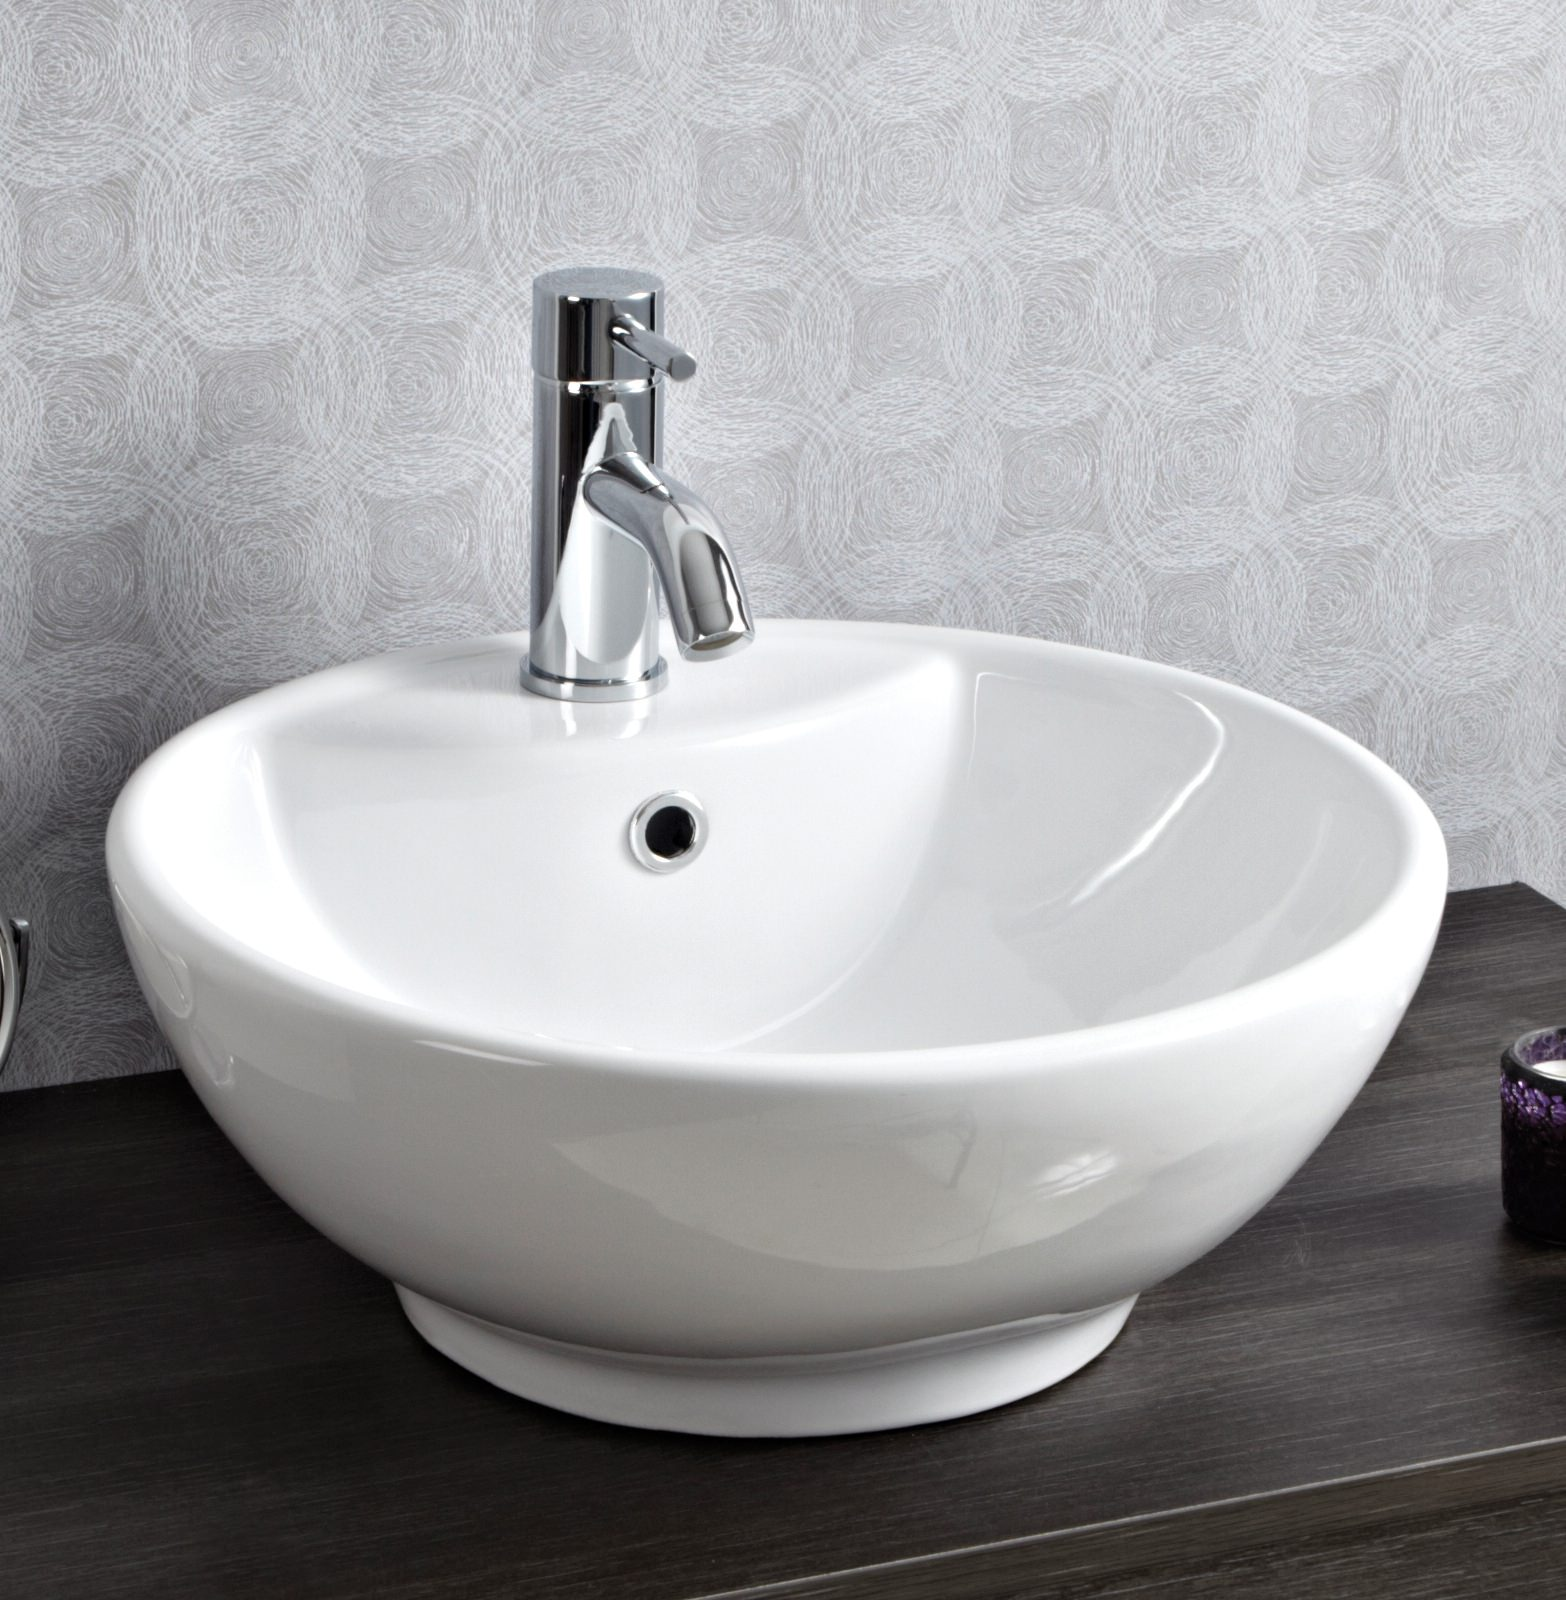 Waskom Wit Phoenix 460mm White Round Counter Top Basin - Vb002